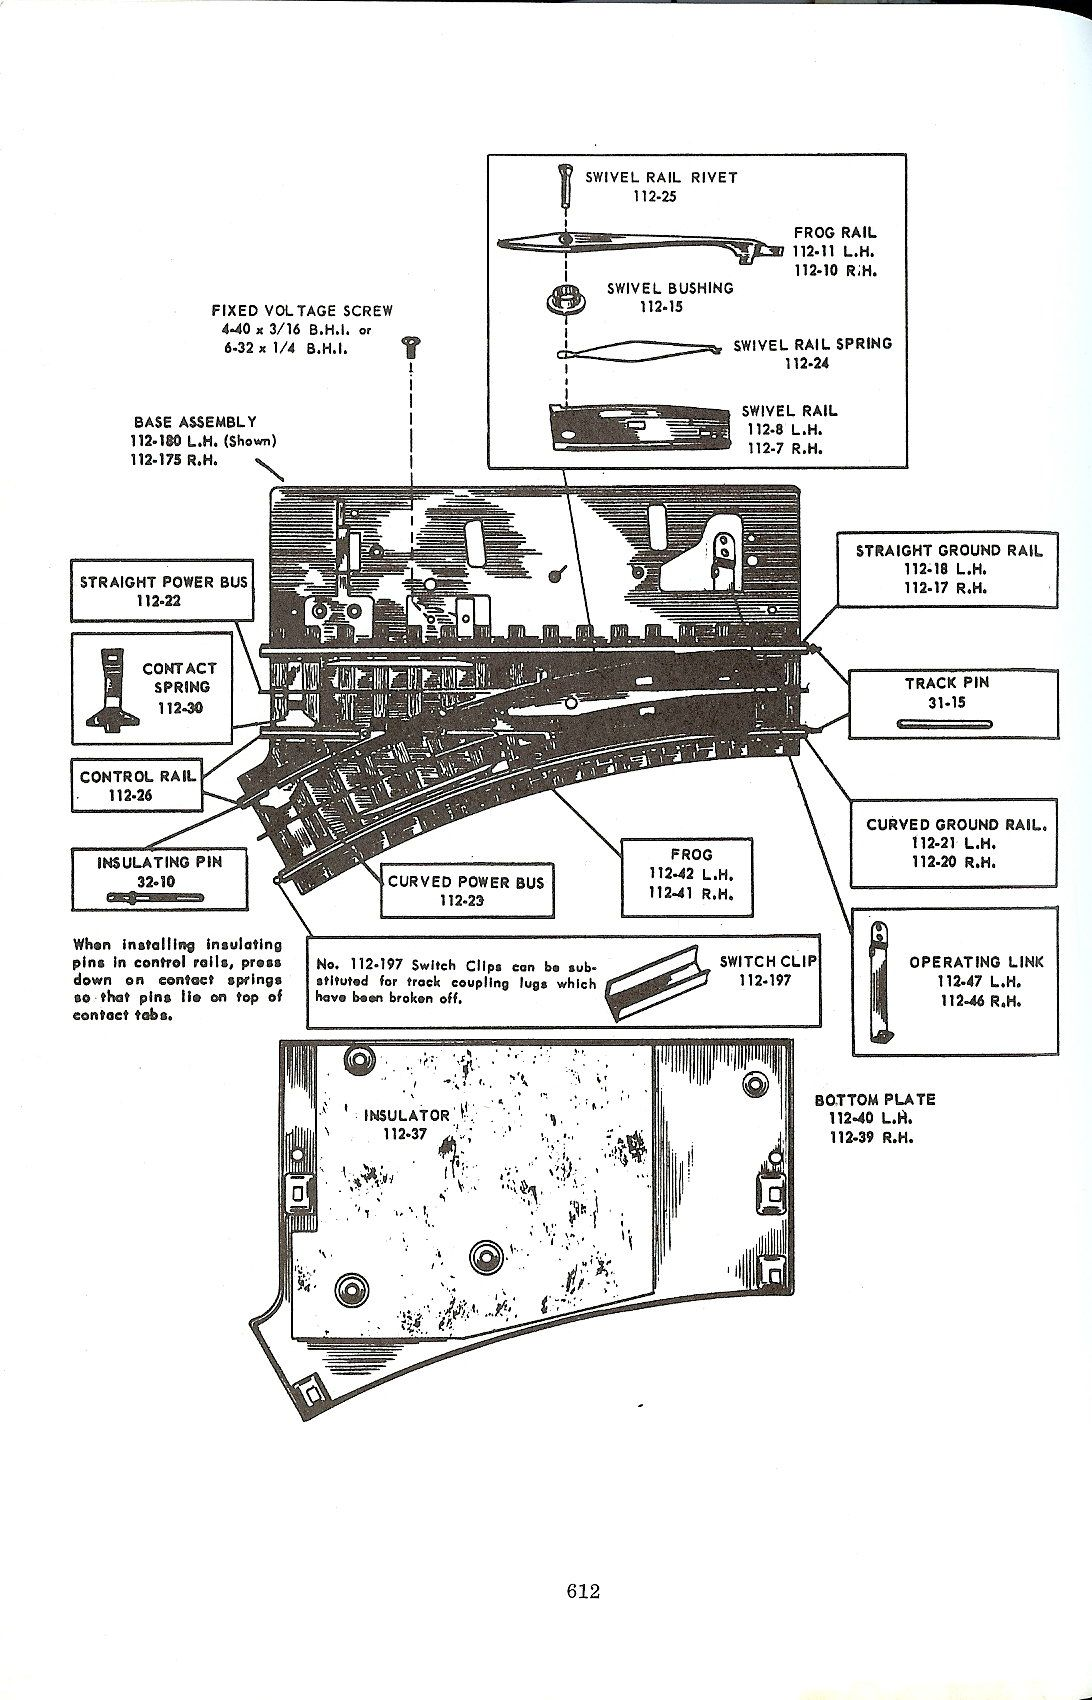 Outstanding Lionel 2026 Parts Diagram Mold - Electrical Circuit ...